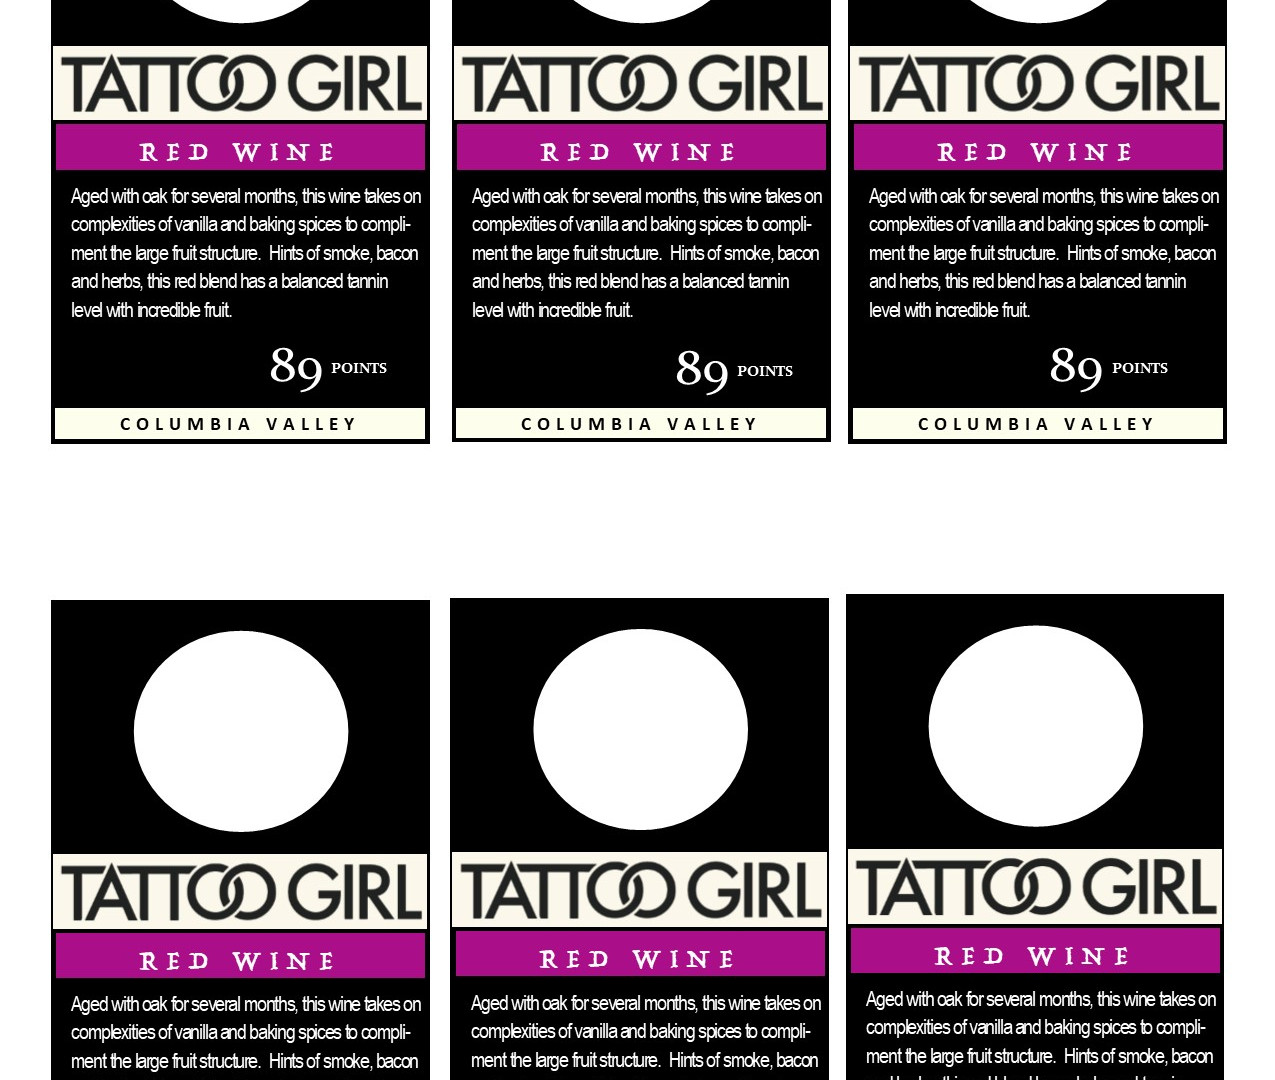 TATTOO GIRL 2020 Red Wine Btl.jpg